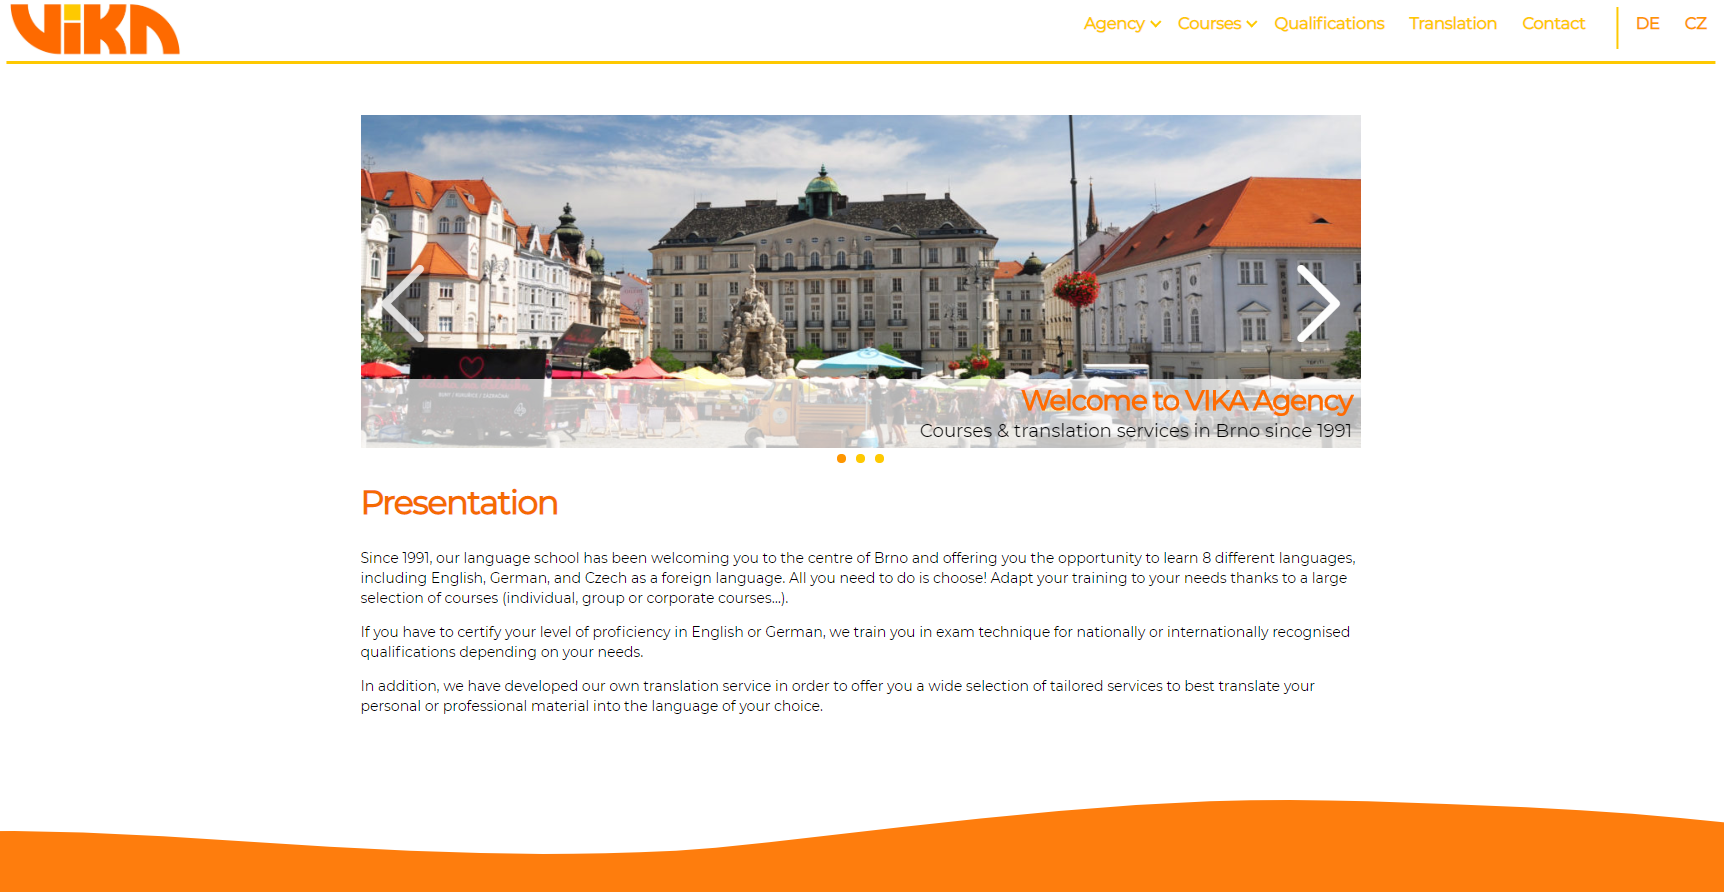 one of the projects - Vika Agency's website homepage